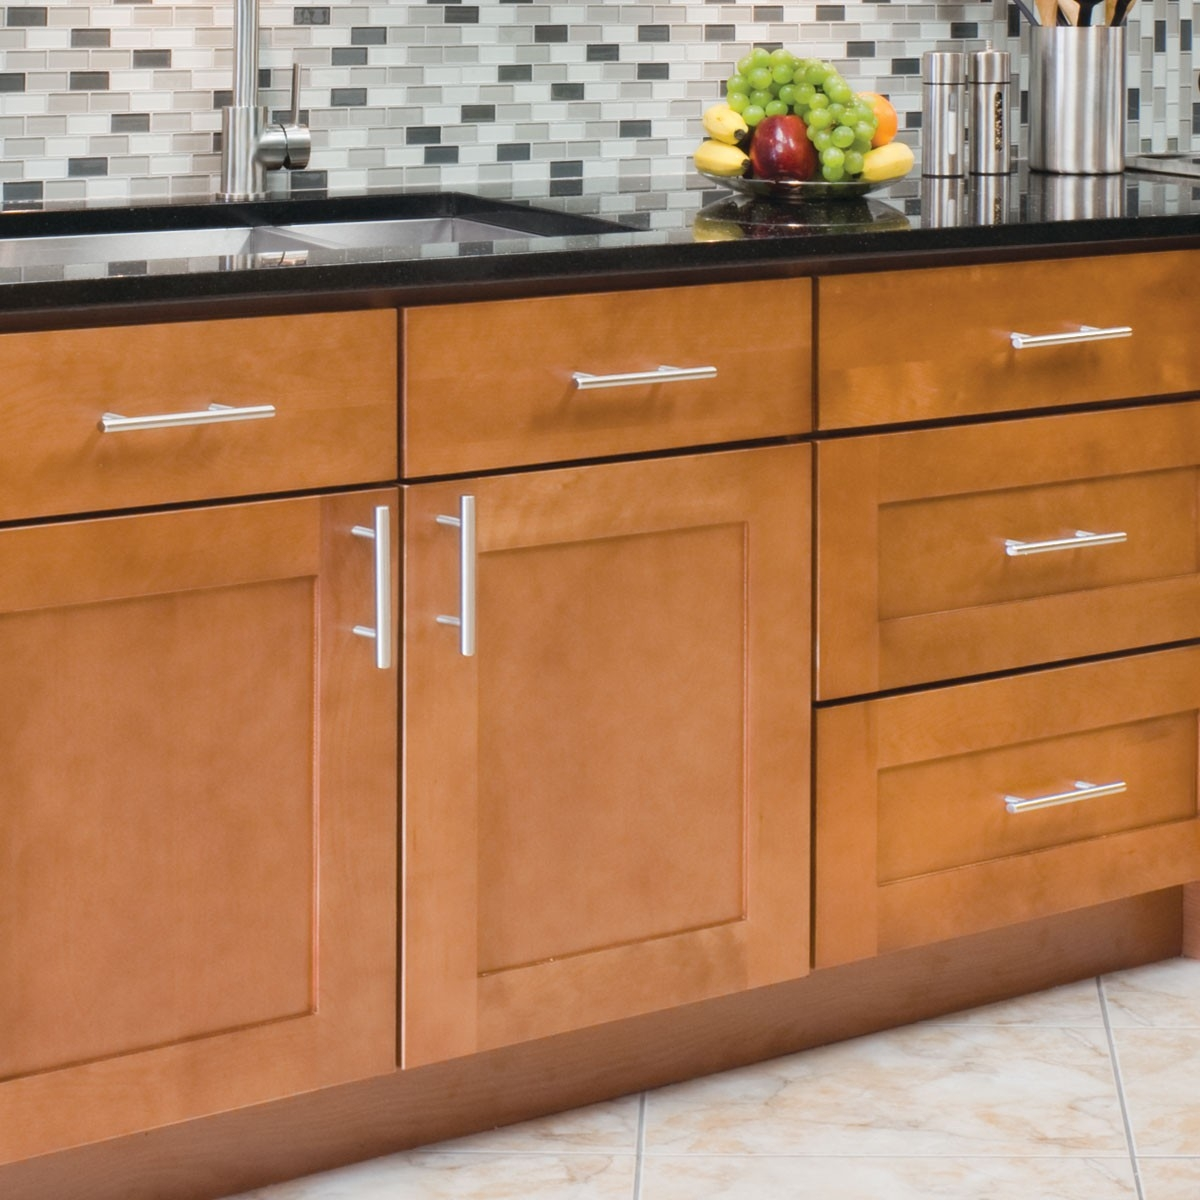 Kitchen Cabinets Handles Stainless Steel1200 X 1200